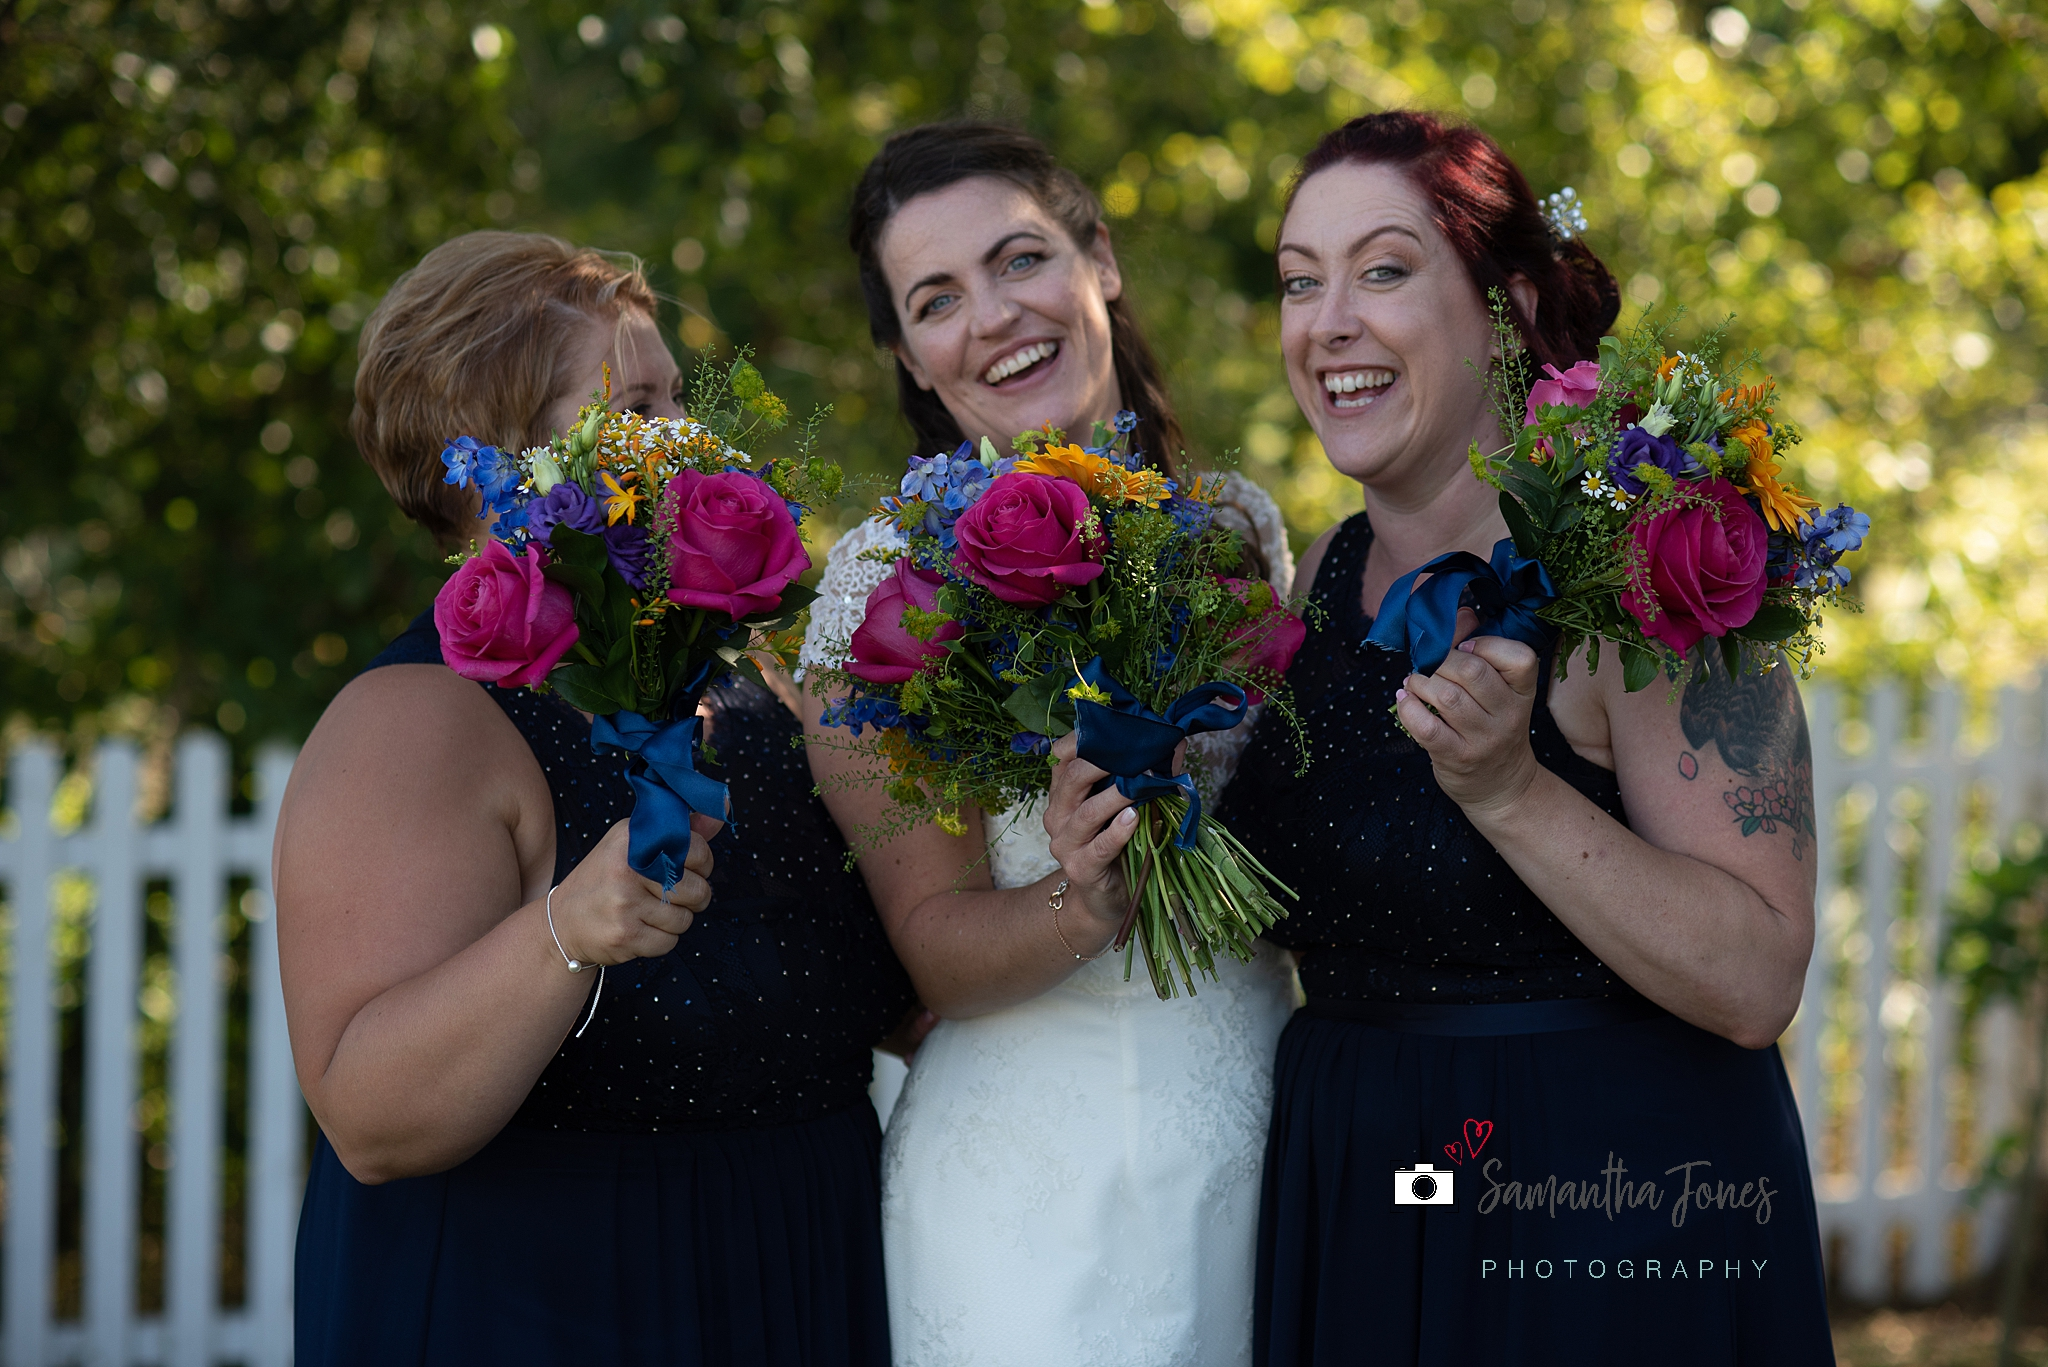 bride and bridesmaids floral bouquets Kent wedding at Stonelees by Samantha Jones Photography